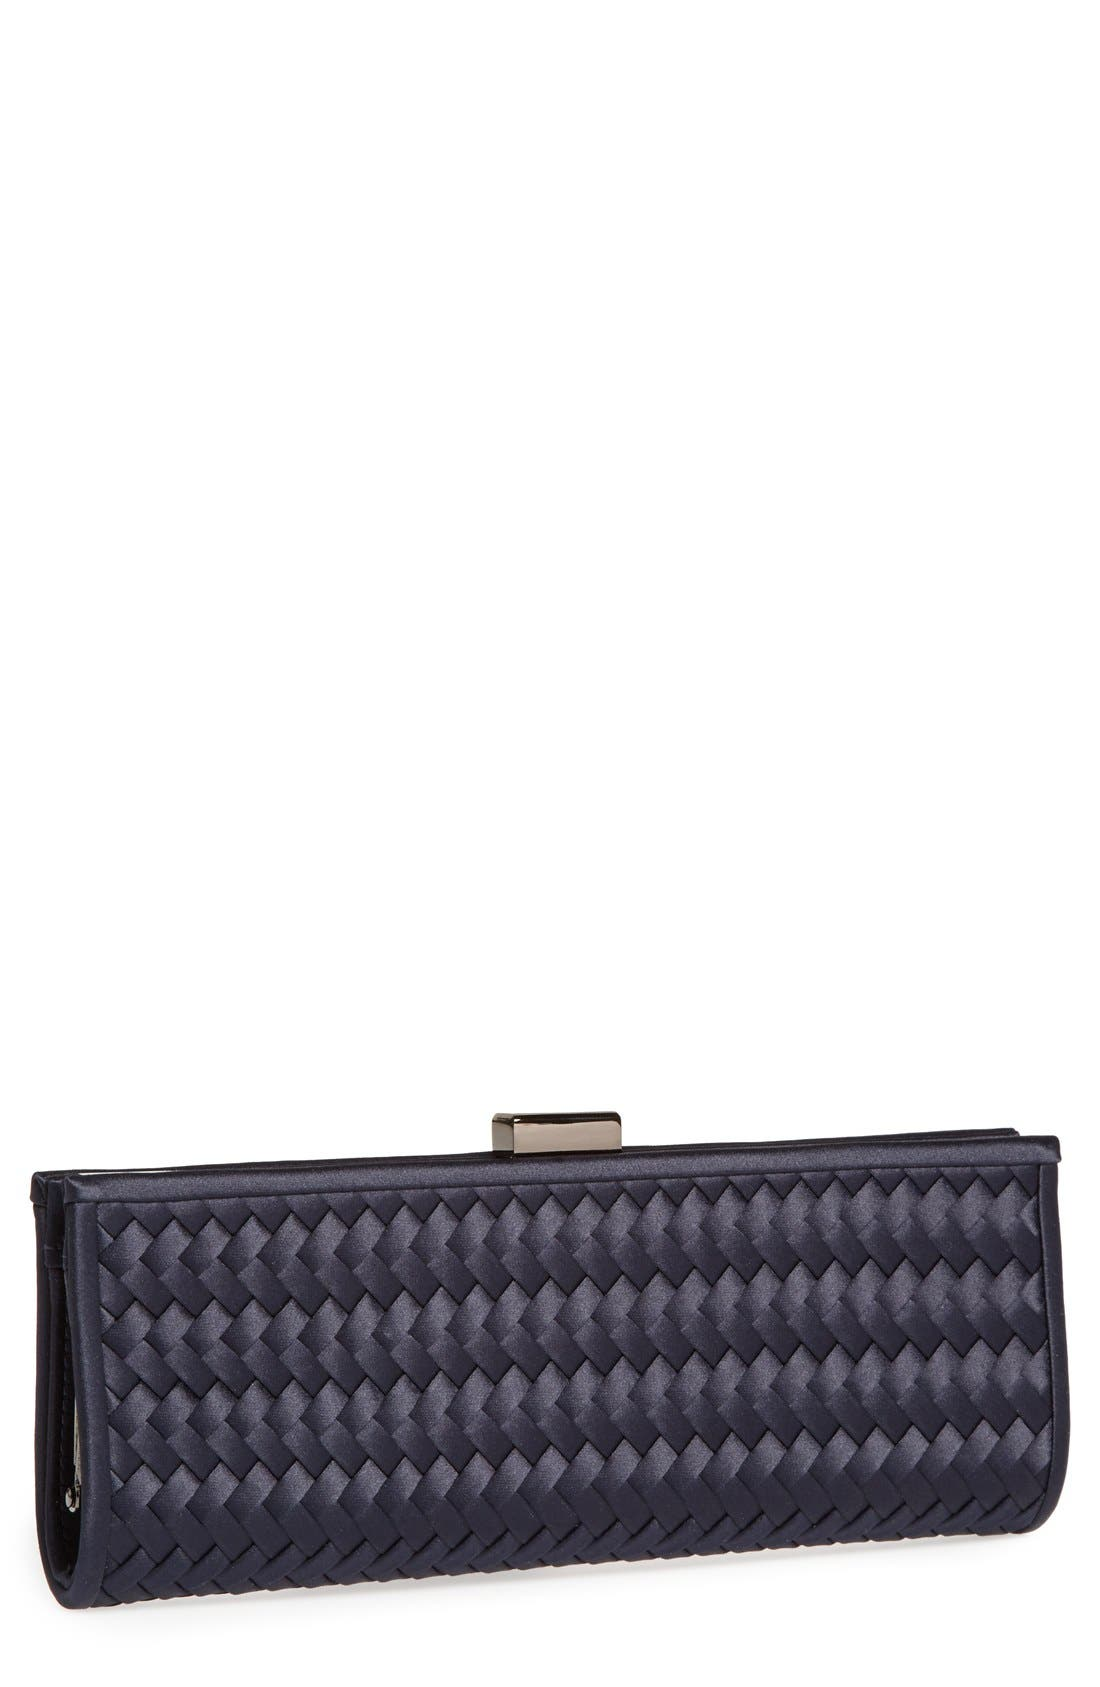 Main Image - La Regale Woven Satin Clutch